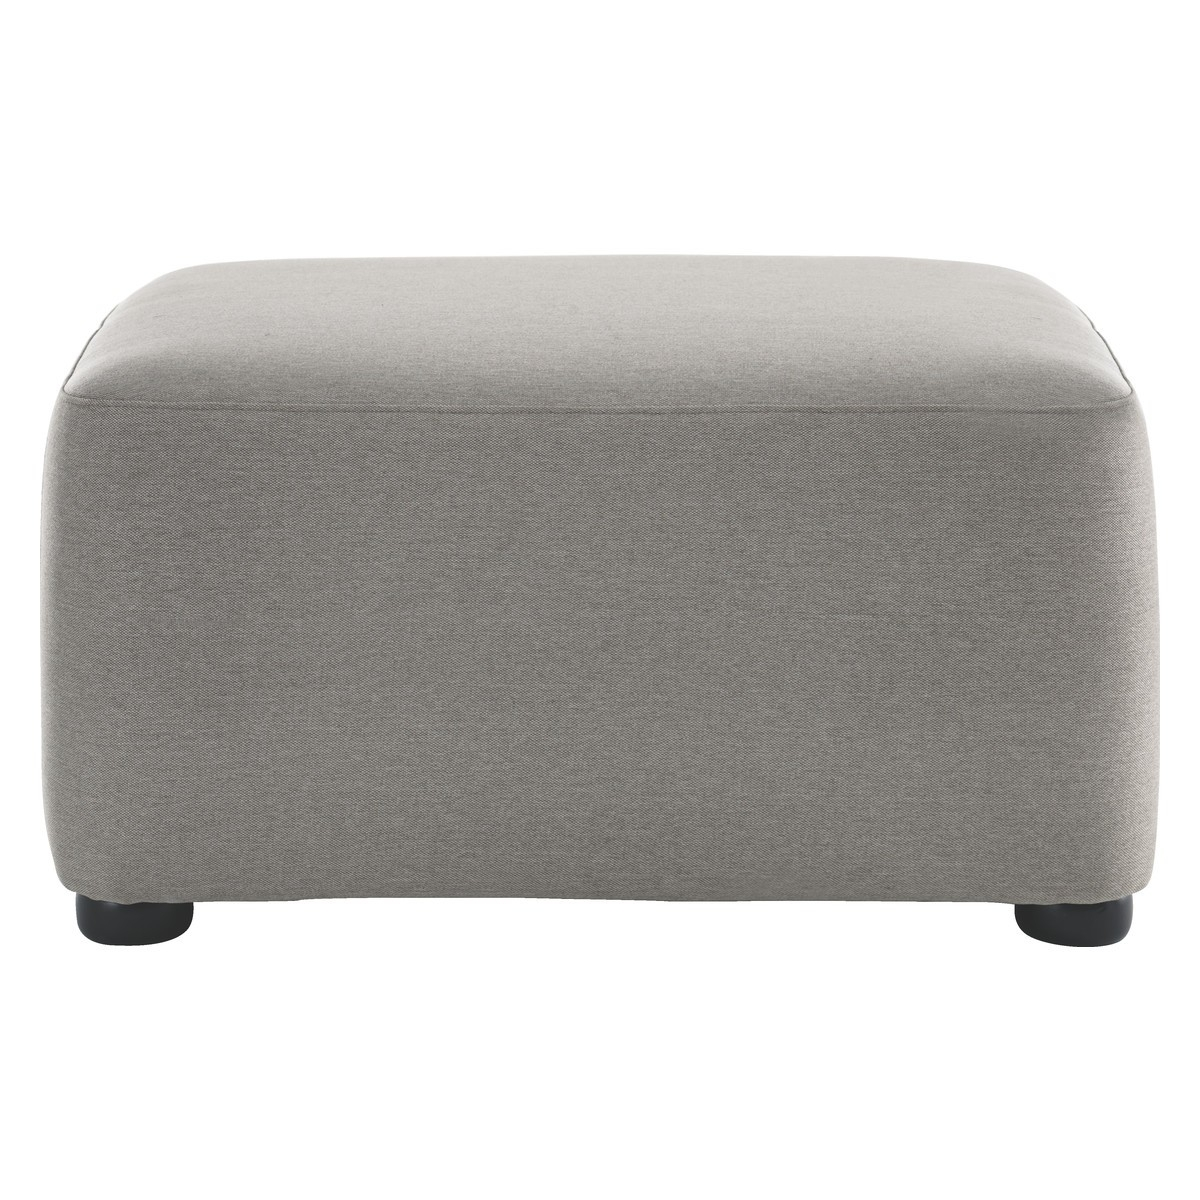 Kasha Grey Fabric Footstool Buy Now At Habitat Uk Pertaining To Fabric Footstools (Image 10 of 15)